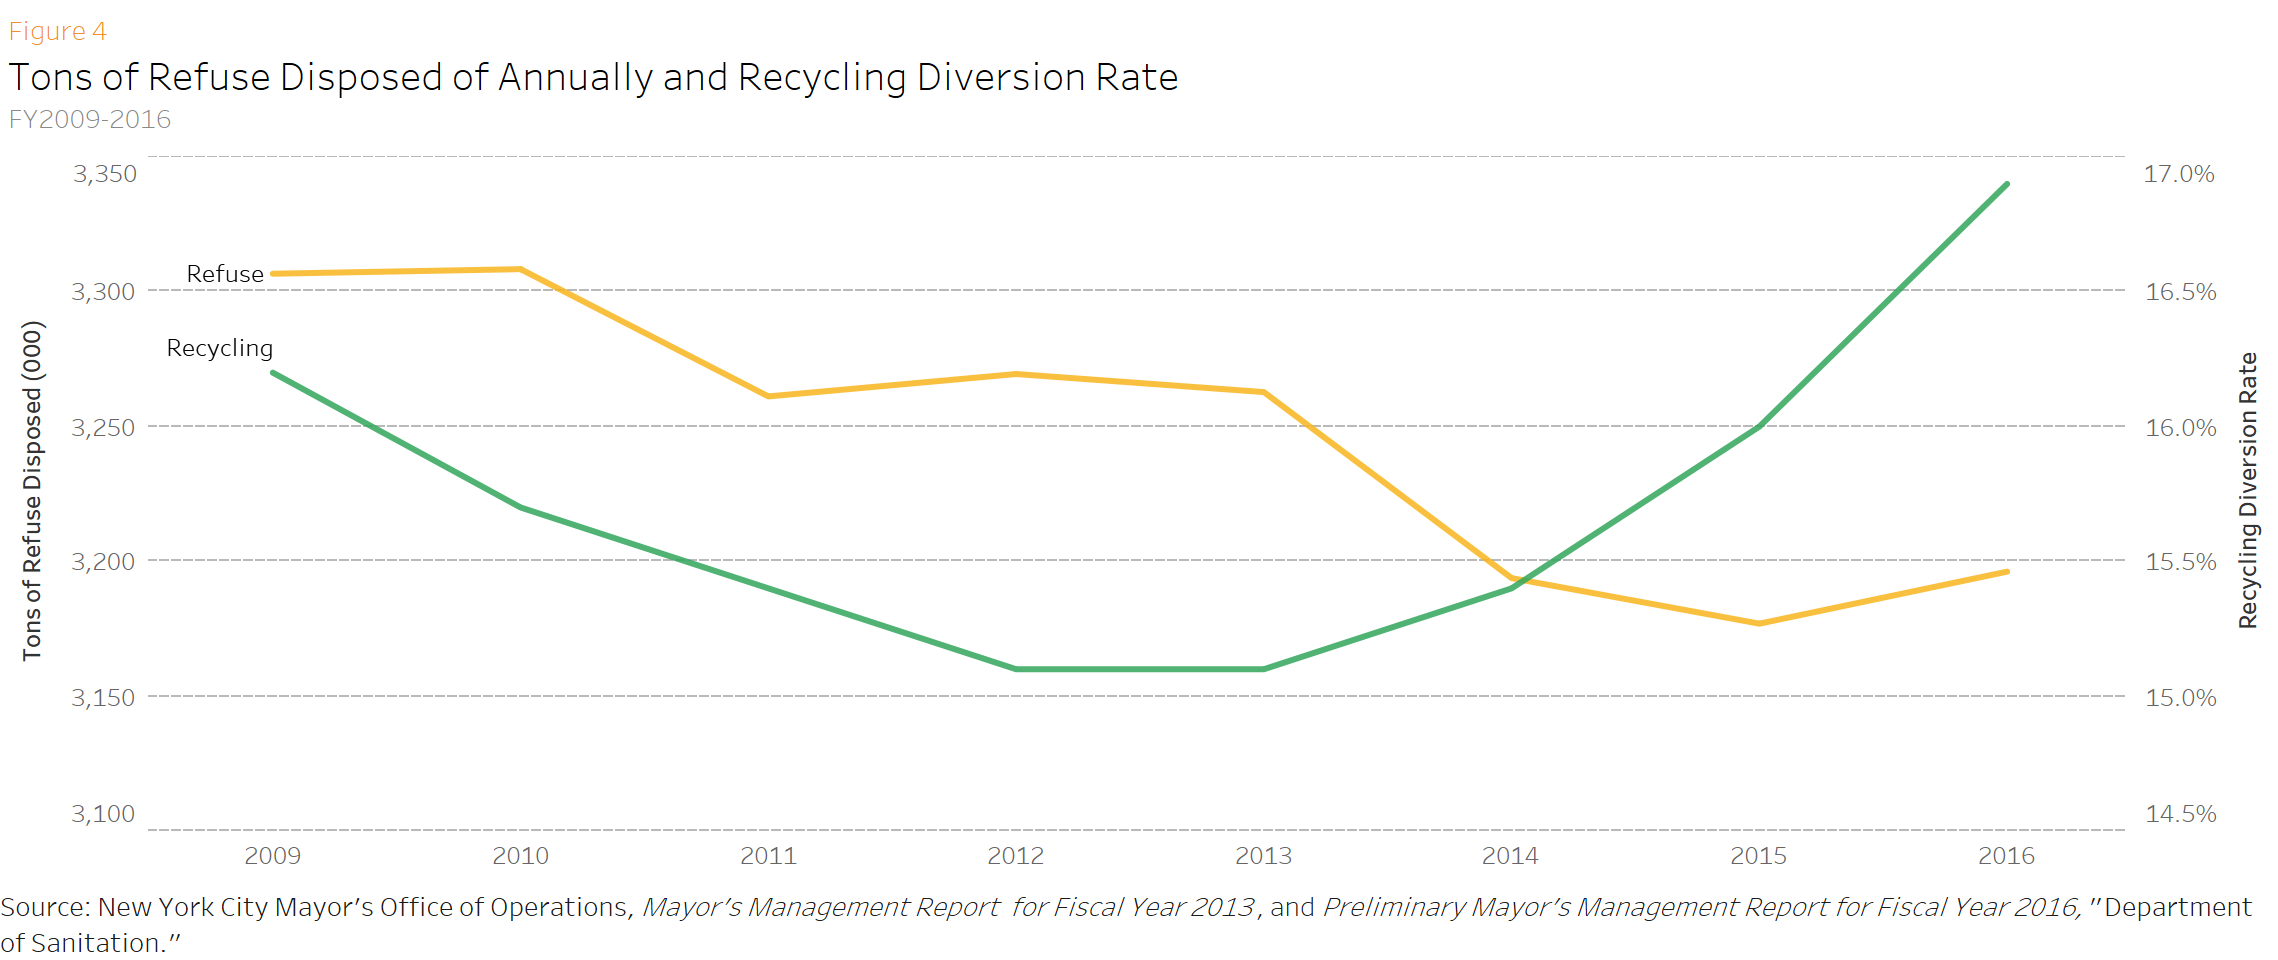 Tons of Refuse Disposed of Annually and Recycling Diversion Rate